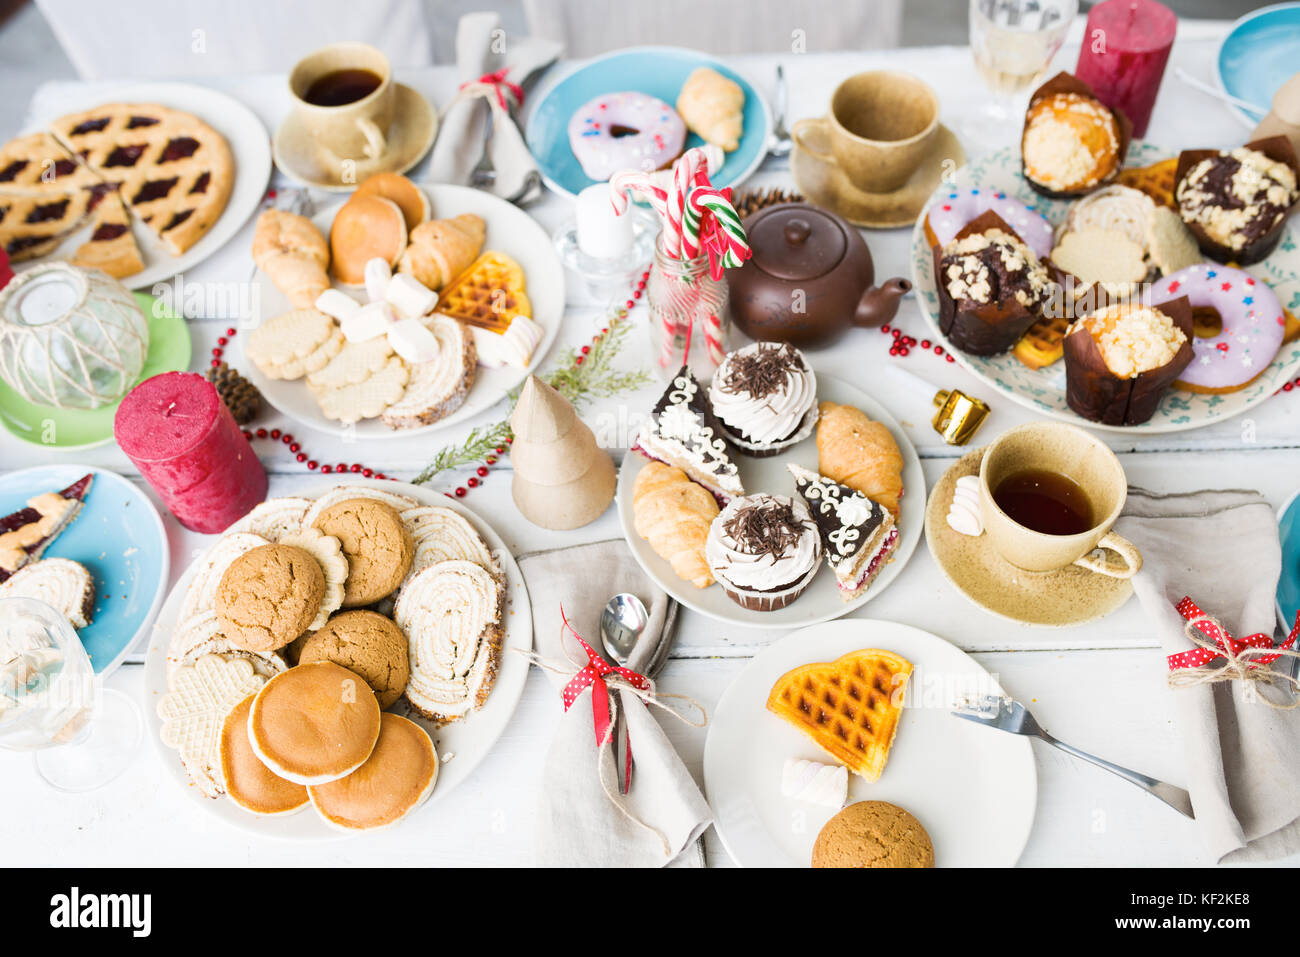 Tasty food - Stock Image